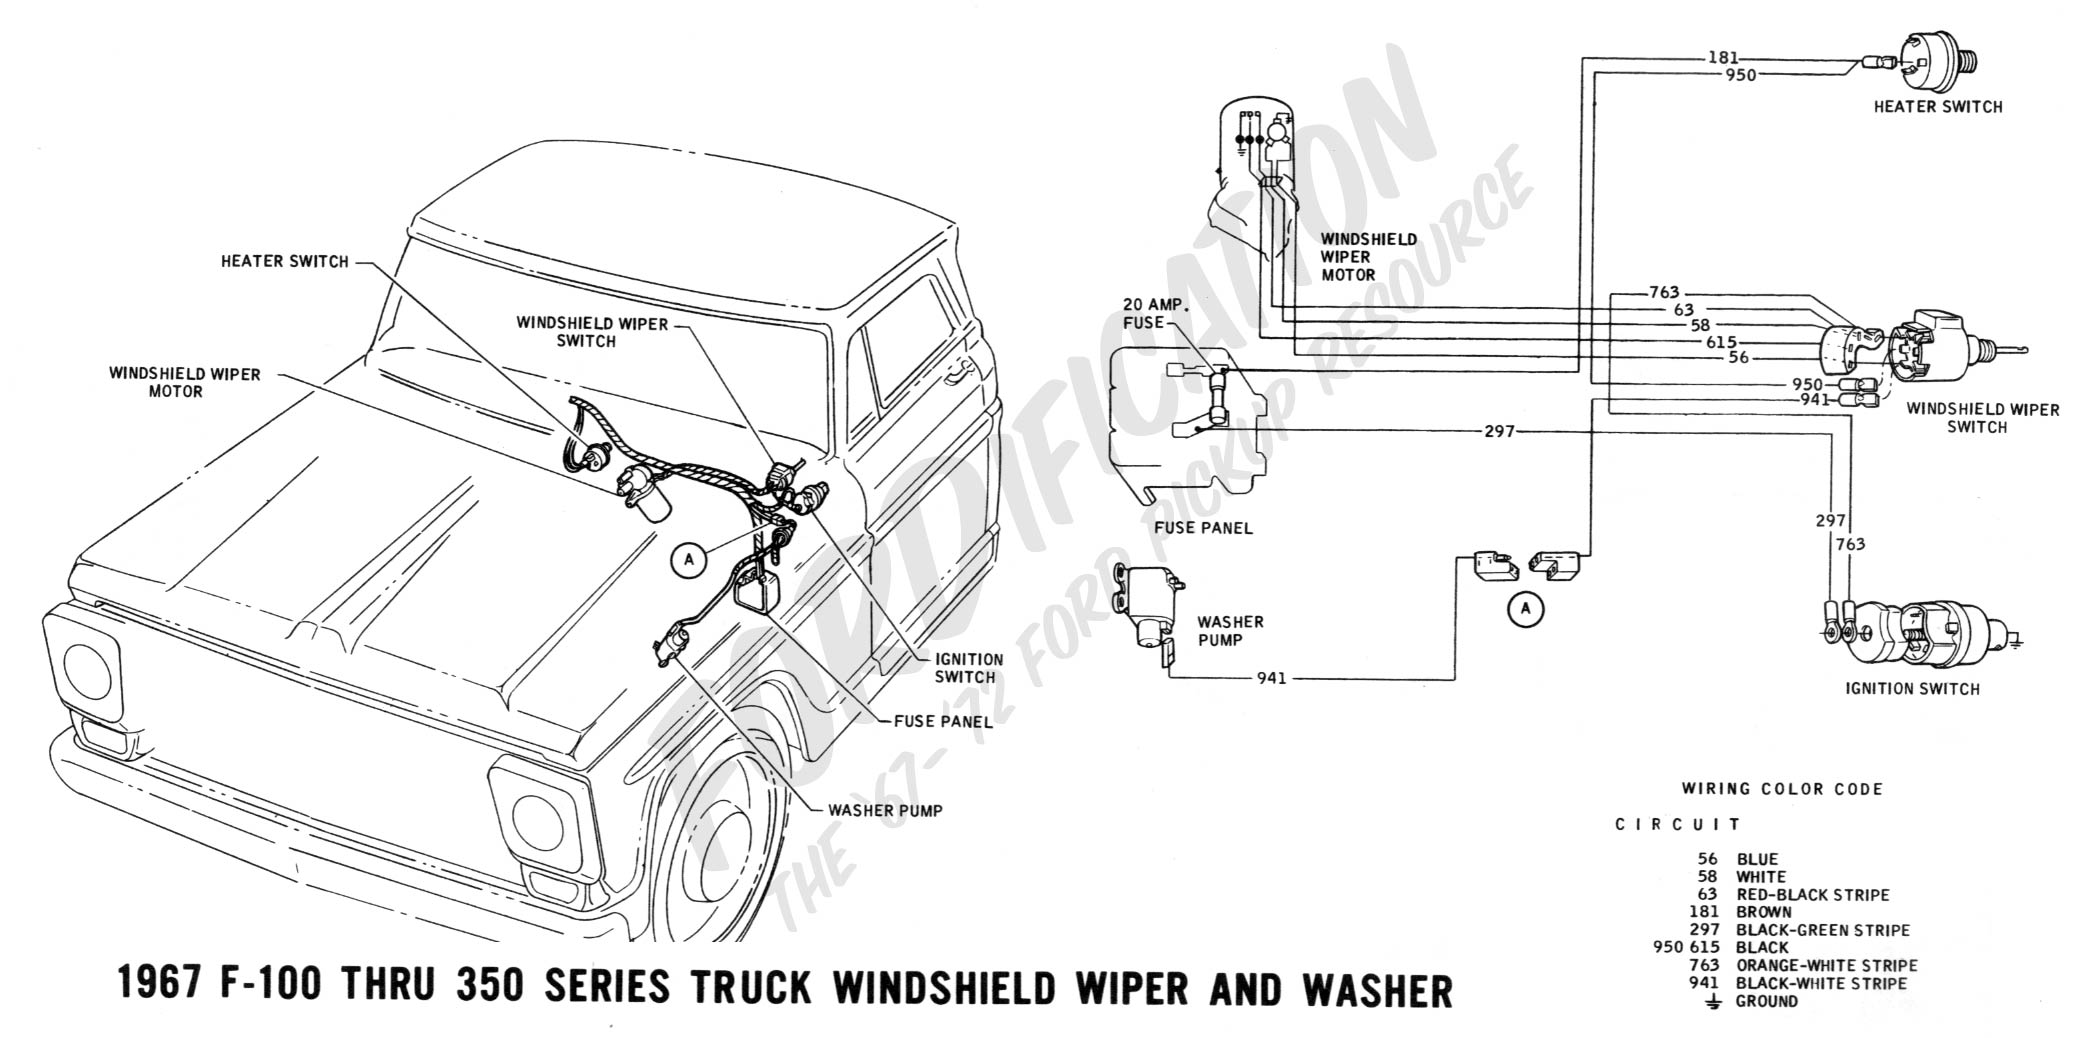 wiring 1967wipers wiper wiring diagram wiper wiring diagram for 1985 chevy vega 1999 ford explorer rear wiper wiring diagram at alyssarenee.co